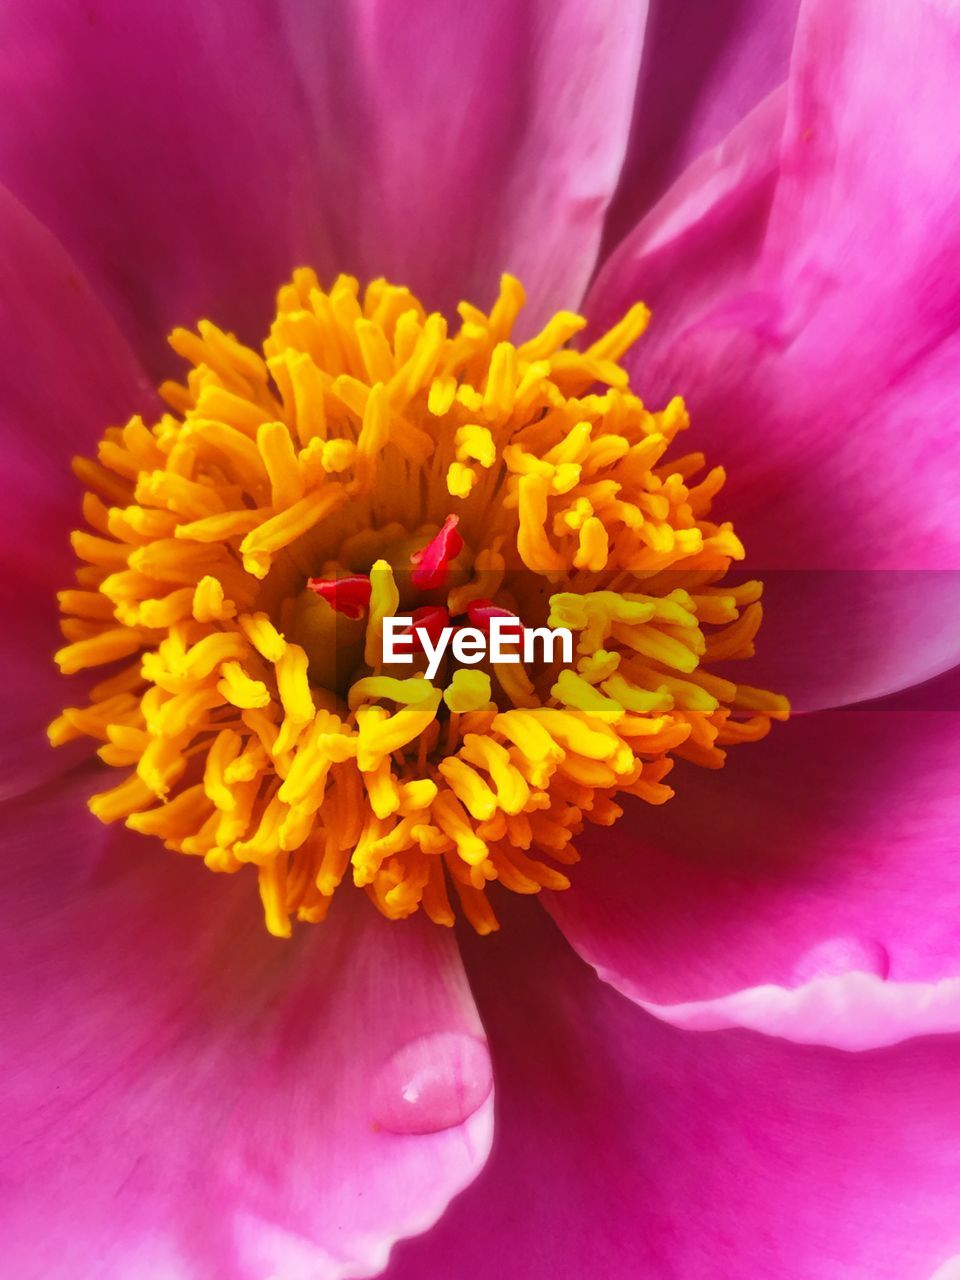 flower, flowering plant, petal, vulnerability, fragility, freshness, flower head, inflorescence, beauty in nature, plant, close-up, pollen, growth, nature, pink color, extreme close-up, yellow, no people, day